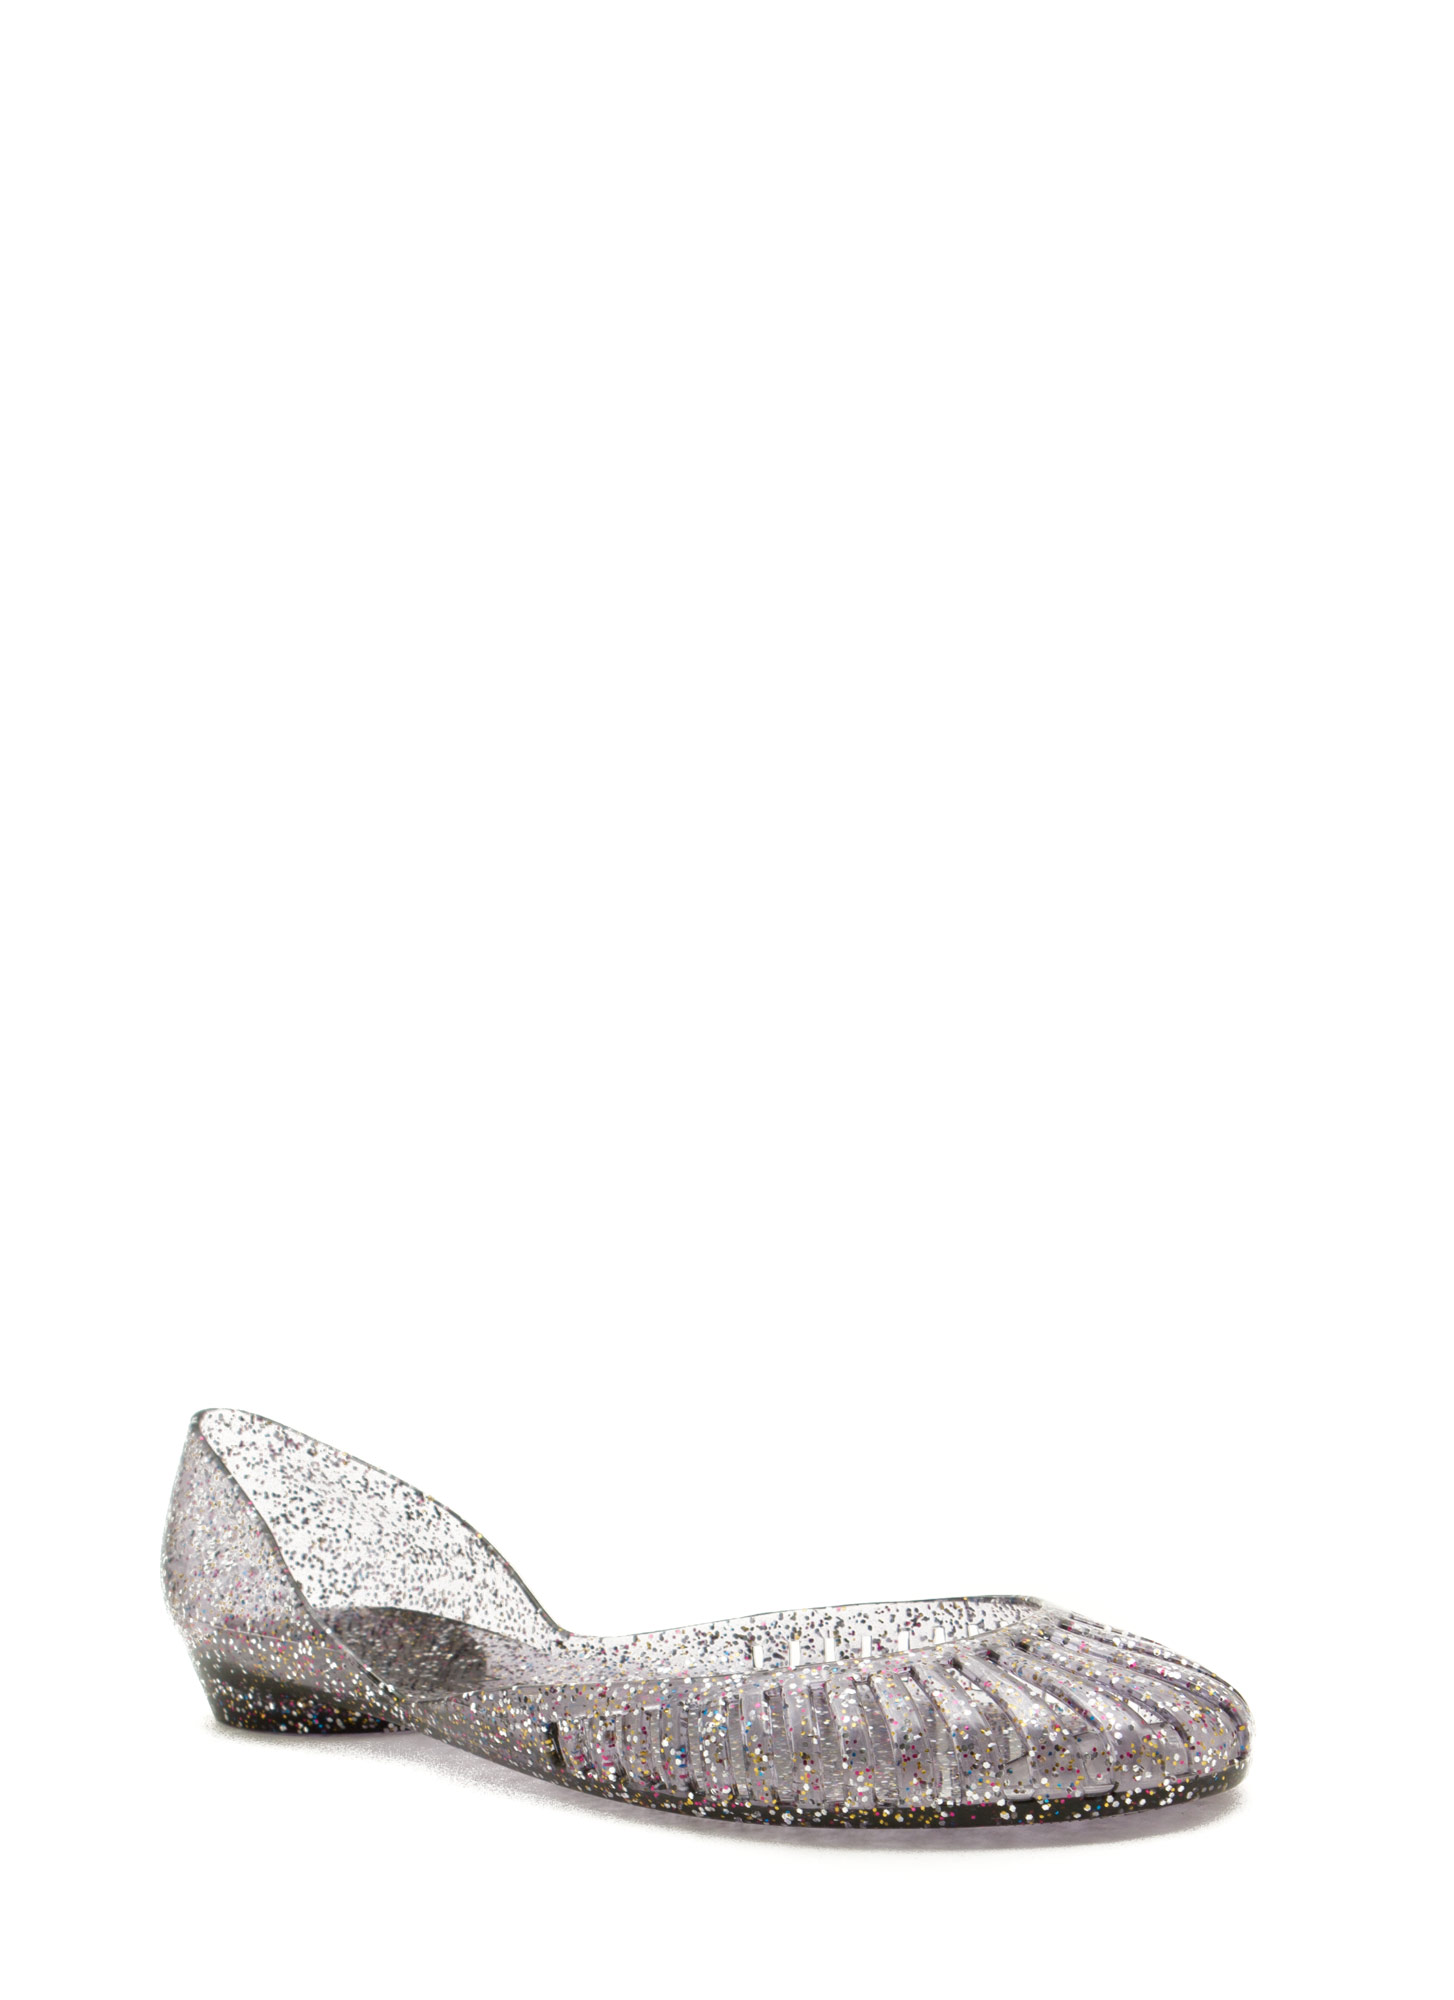 That's My Jam Cut-Out Jelly Flats PEWTER